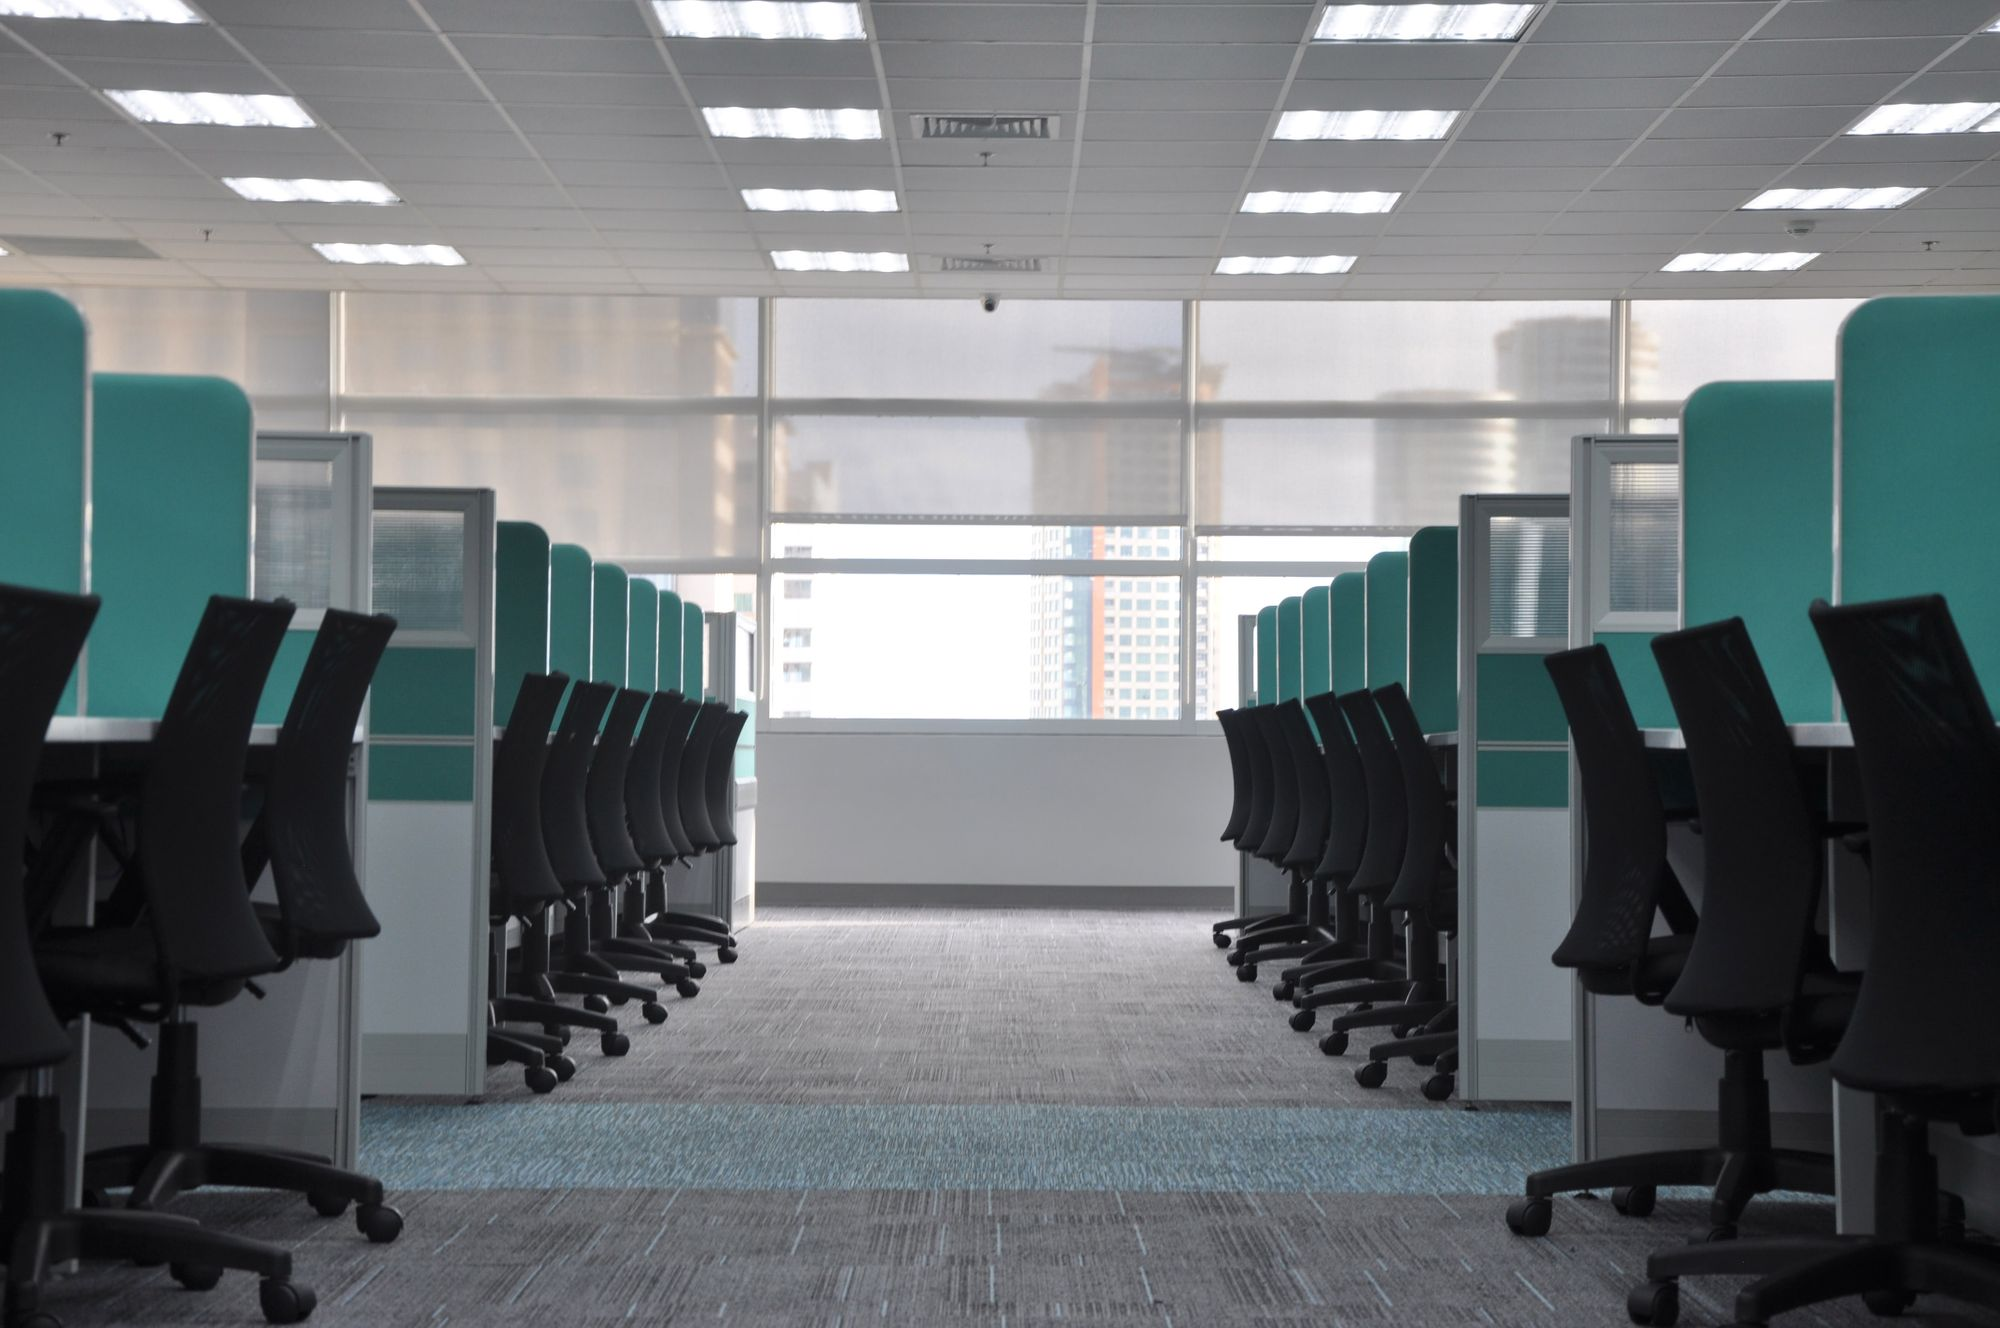 Office Property Market Continues to Transform